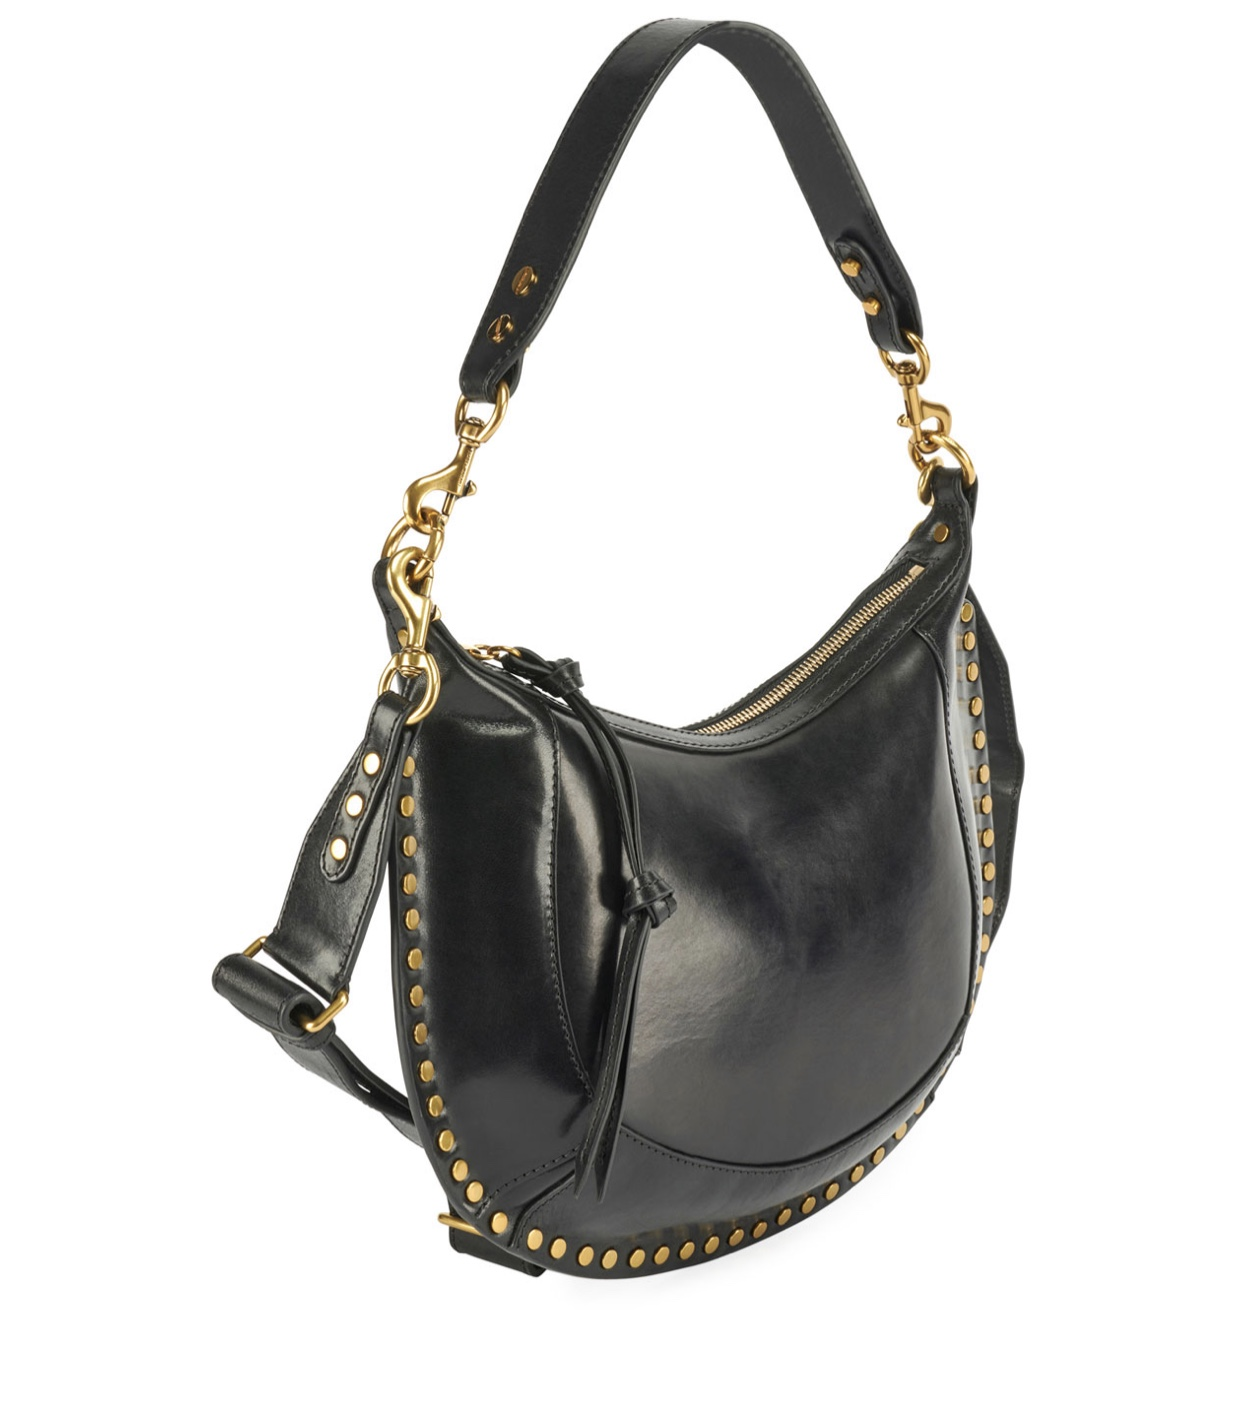 ISABEL MARANT Naoko Leather Half-Moon Hobo Bag